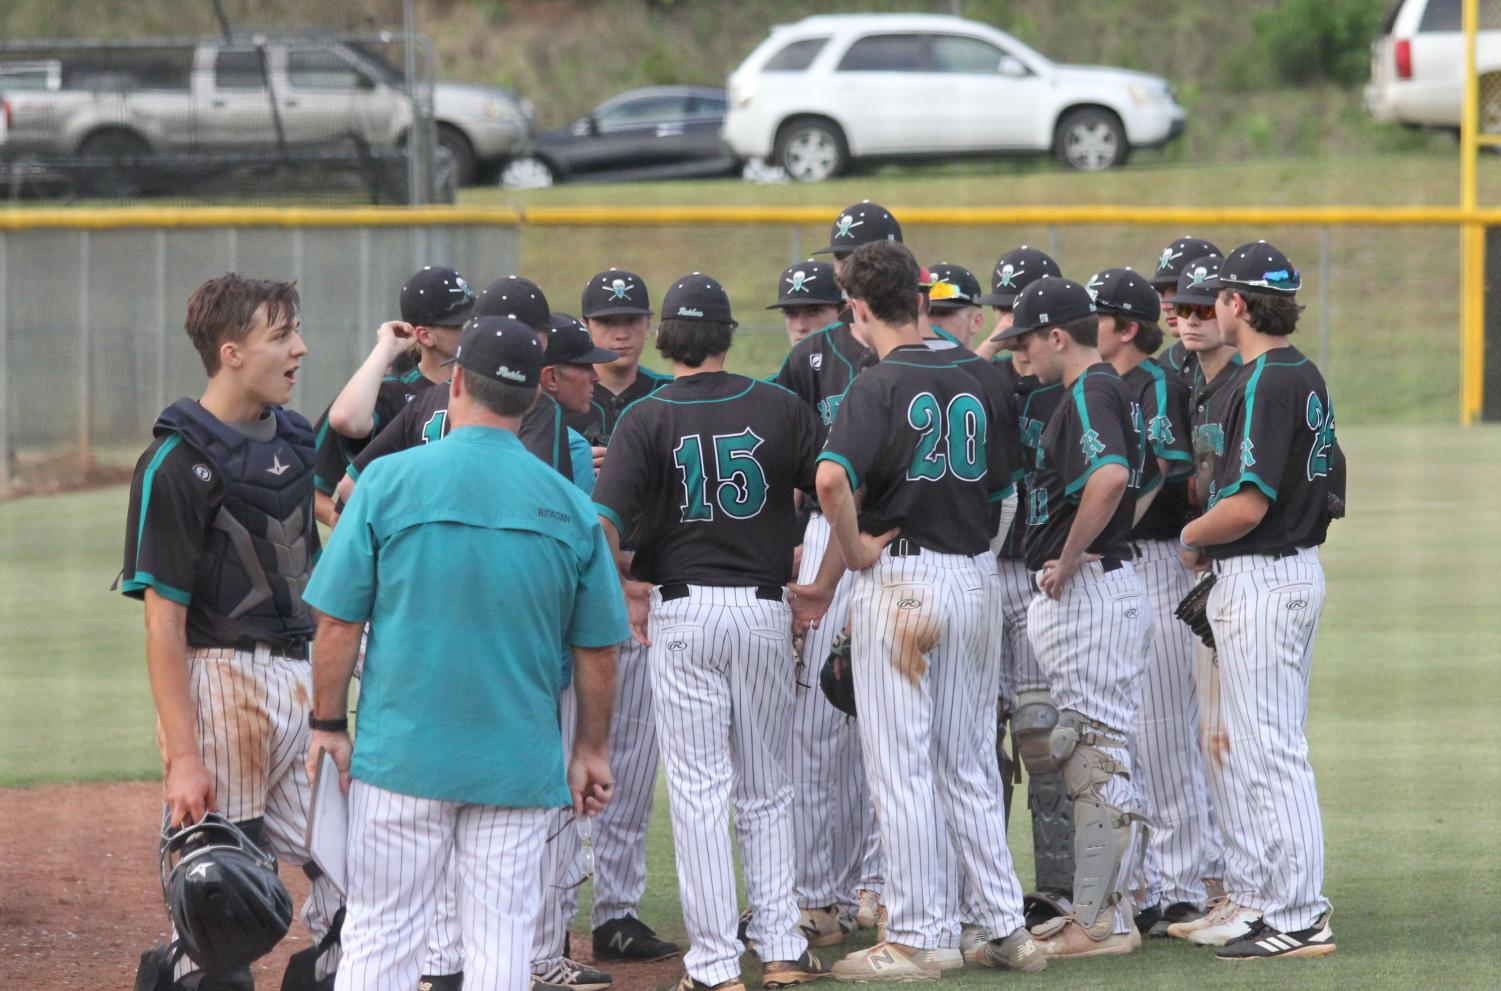 The team huddles in between innings during a state playoff game versus Ragsdale. The Raiders won 6-0 against the Tigers on May 9.